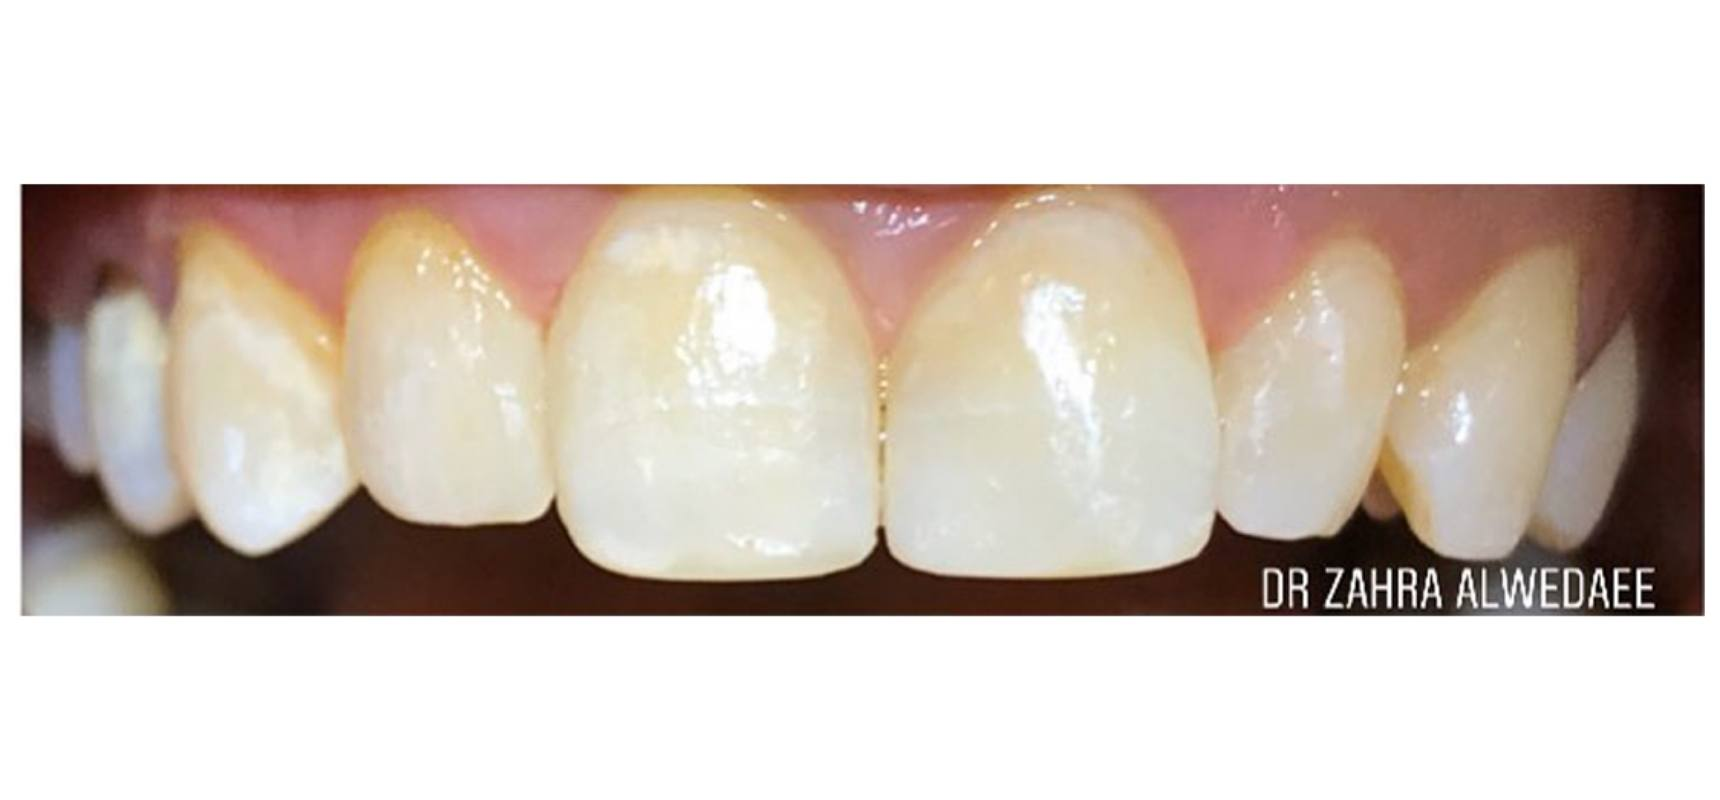 After-Cosmetic fillings